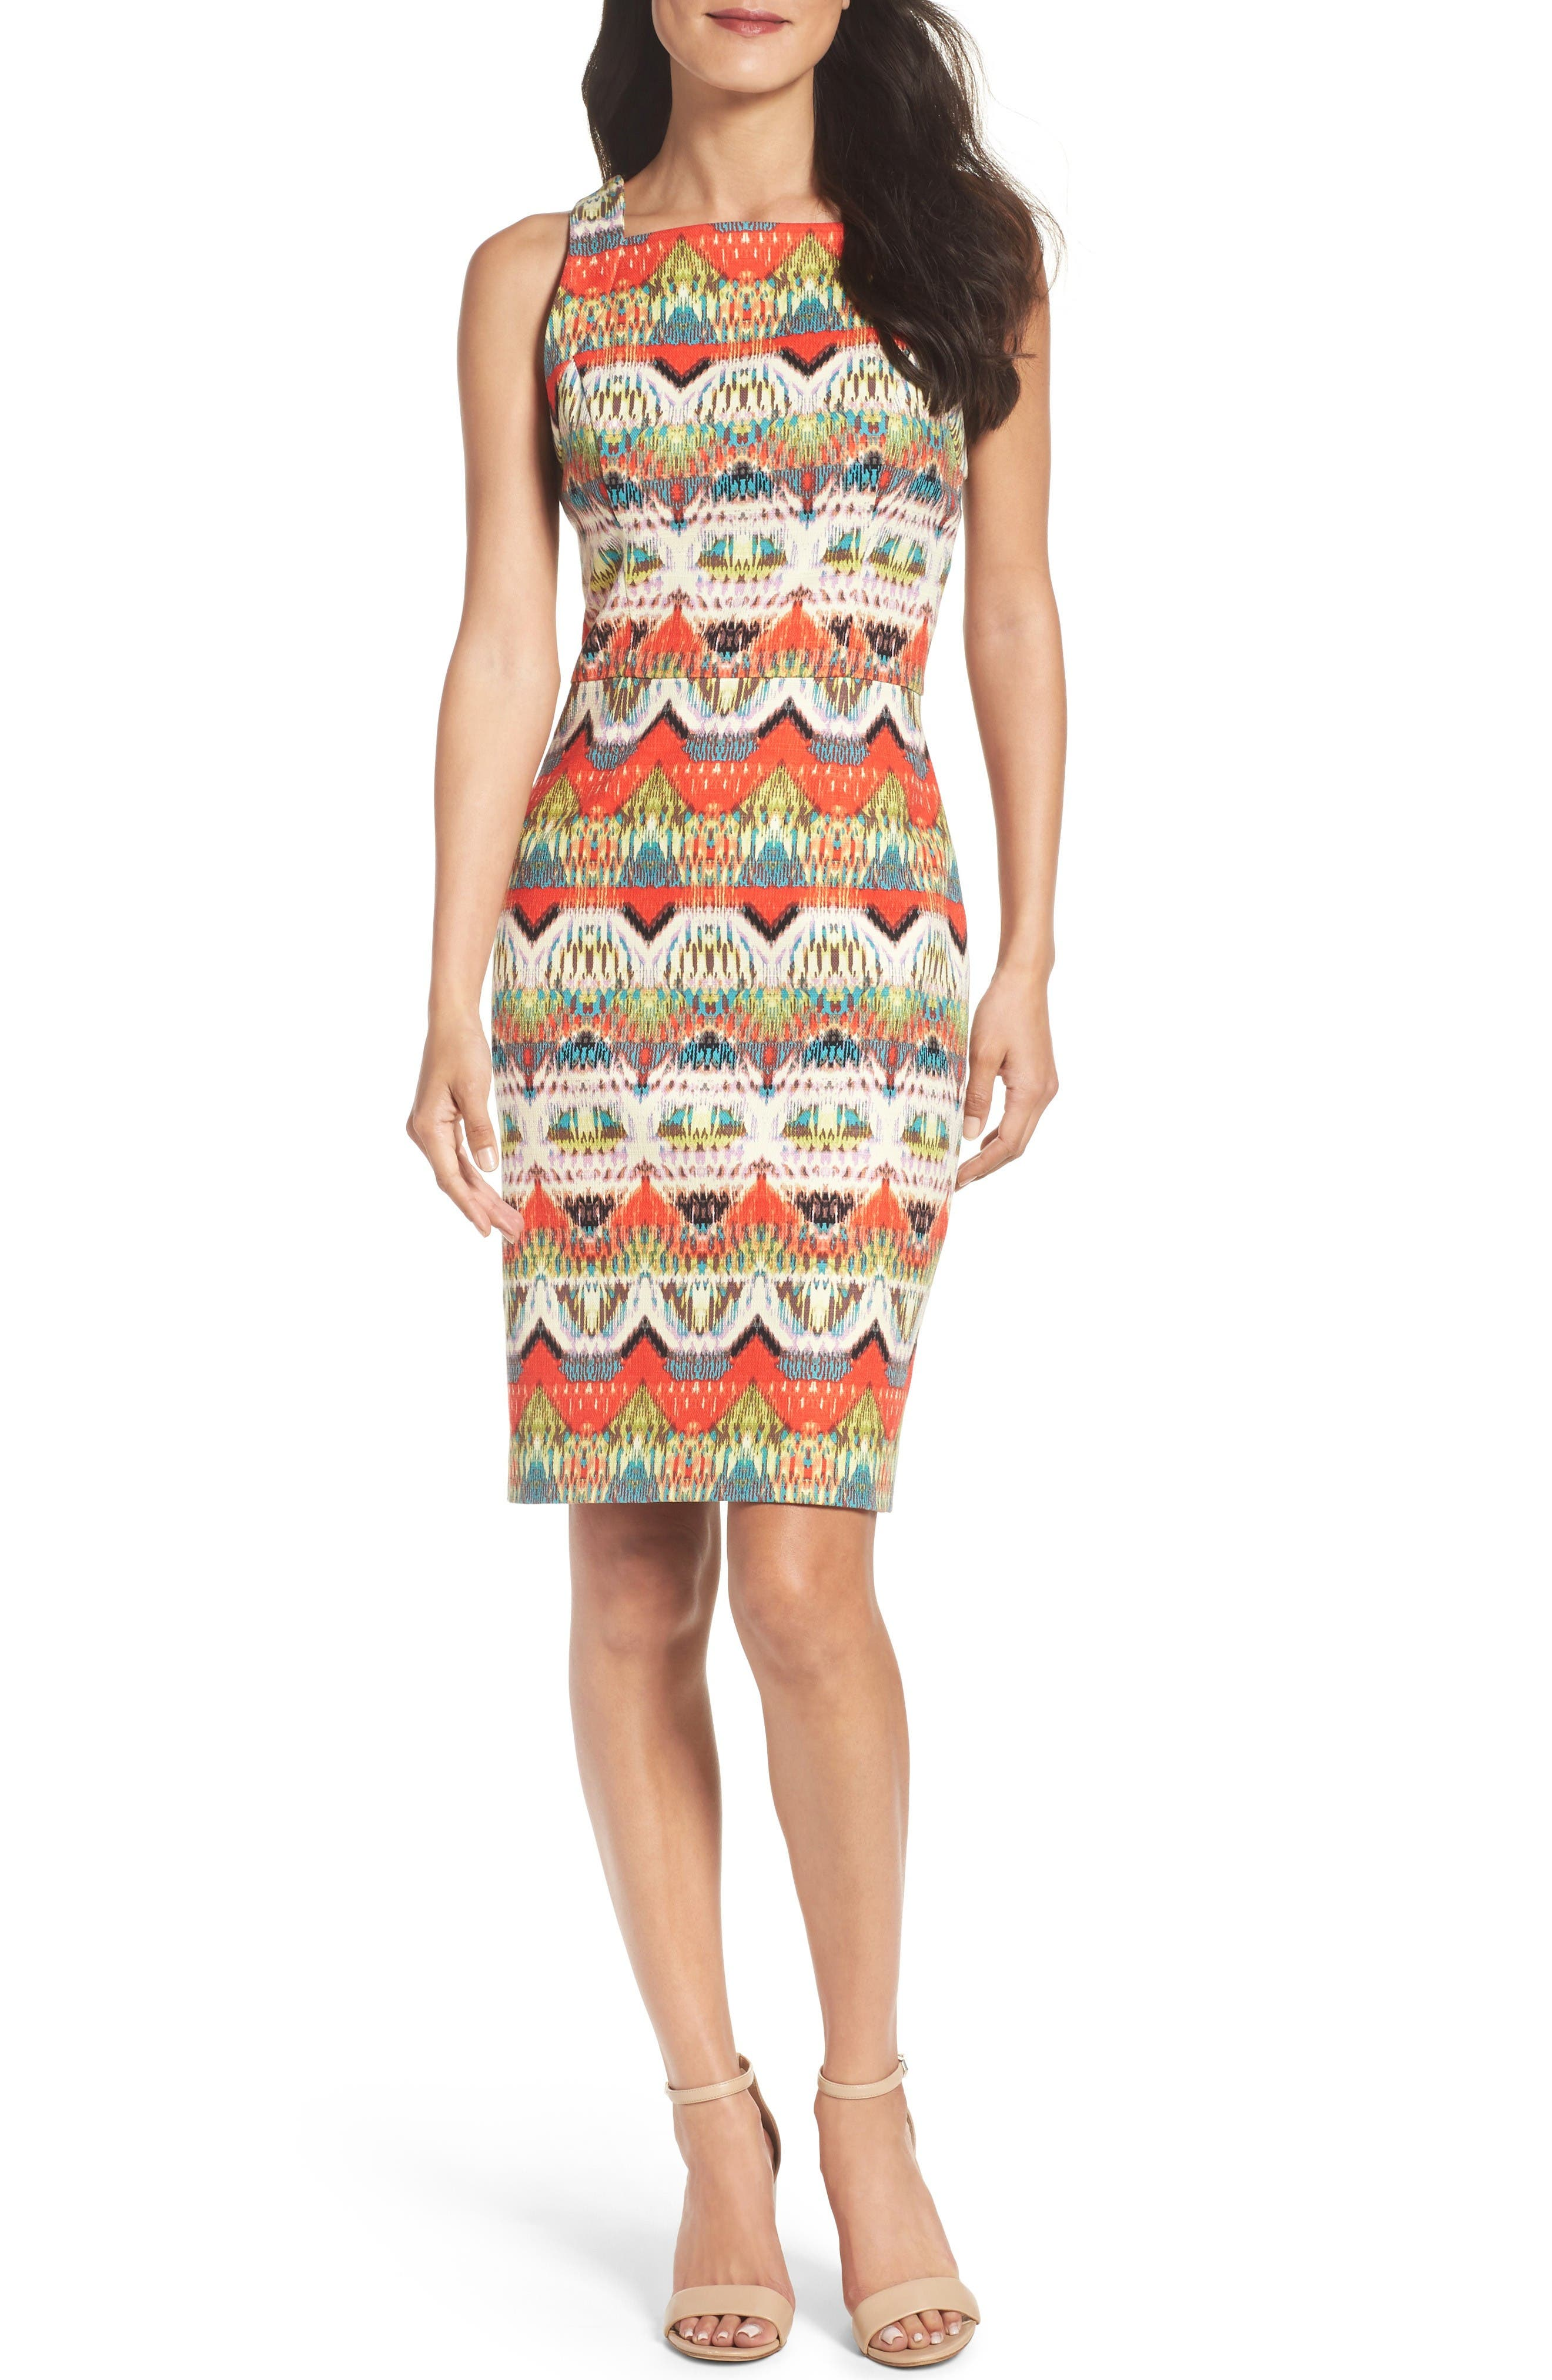 Alternate Image 1 Selected - Maggy London Print Sheath Dress (Regular & Petite)